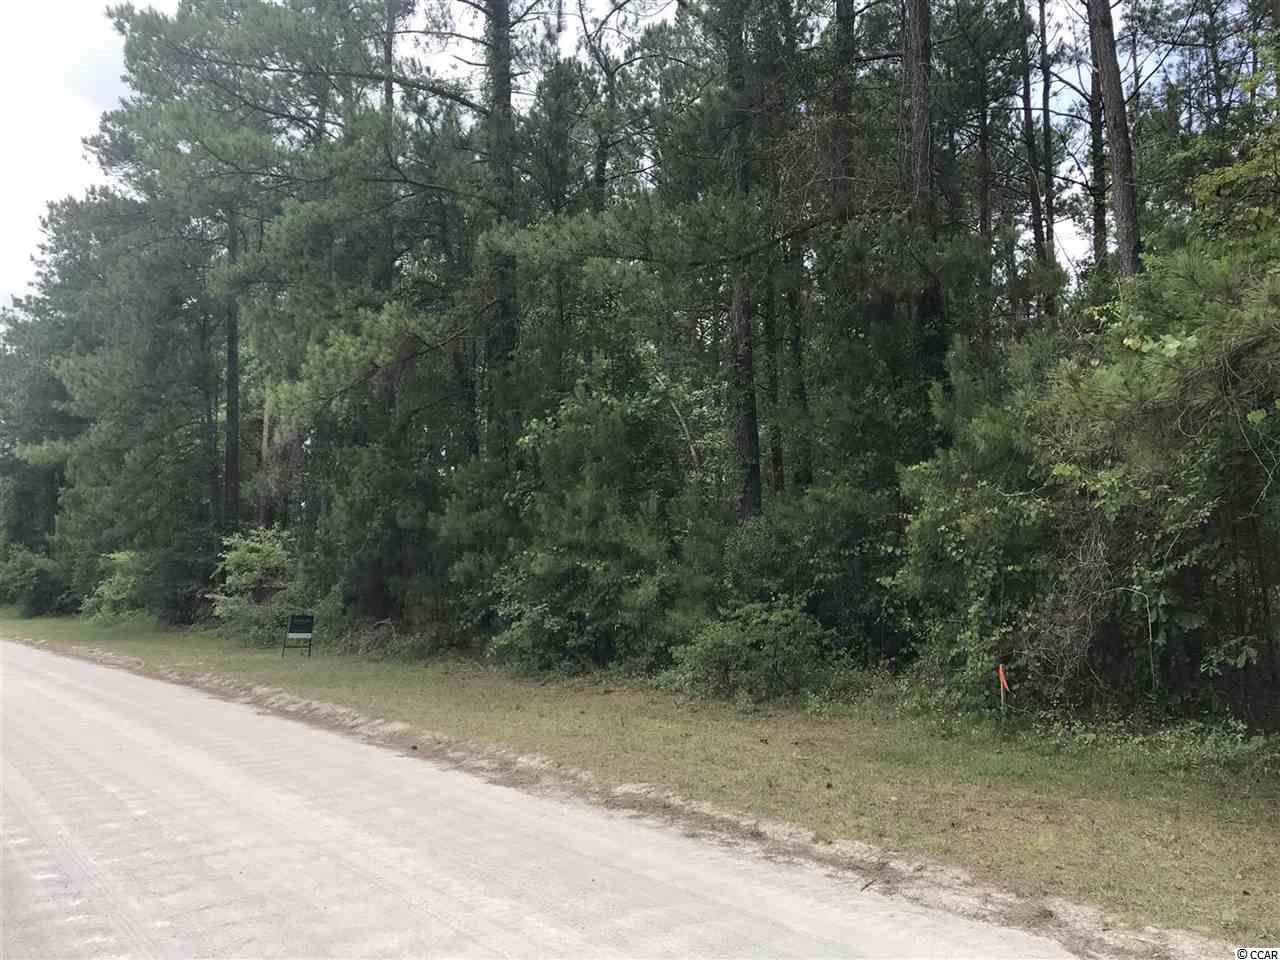 This is your chance to own a piece of land in the great Conway area! This wooded lot is located on Hucks Rd. and is a whopping 0.77 acres! Perfect size to fit just about any house or manufactured home you can build. Schedule your appointment today!